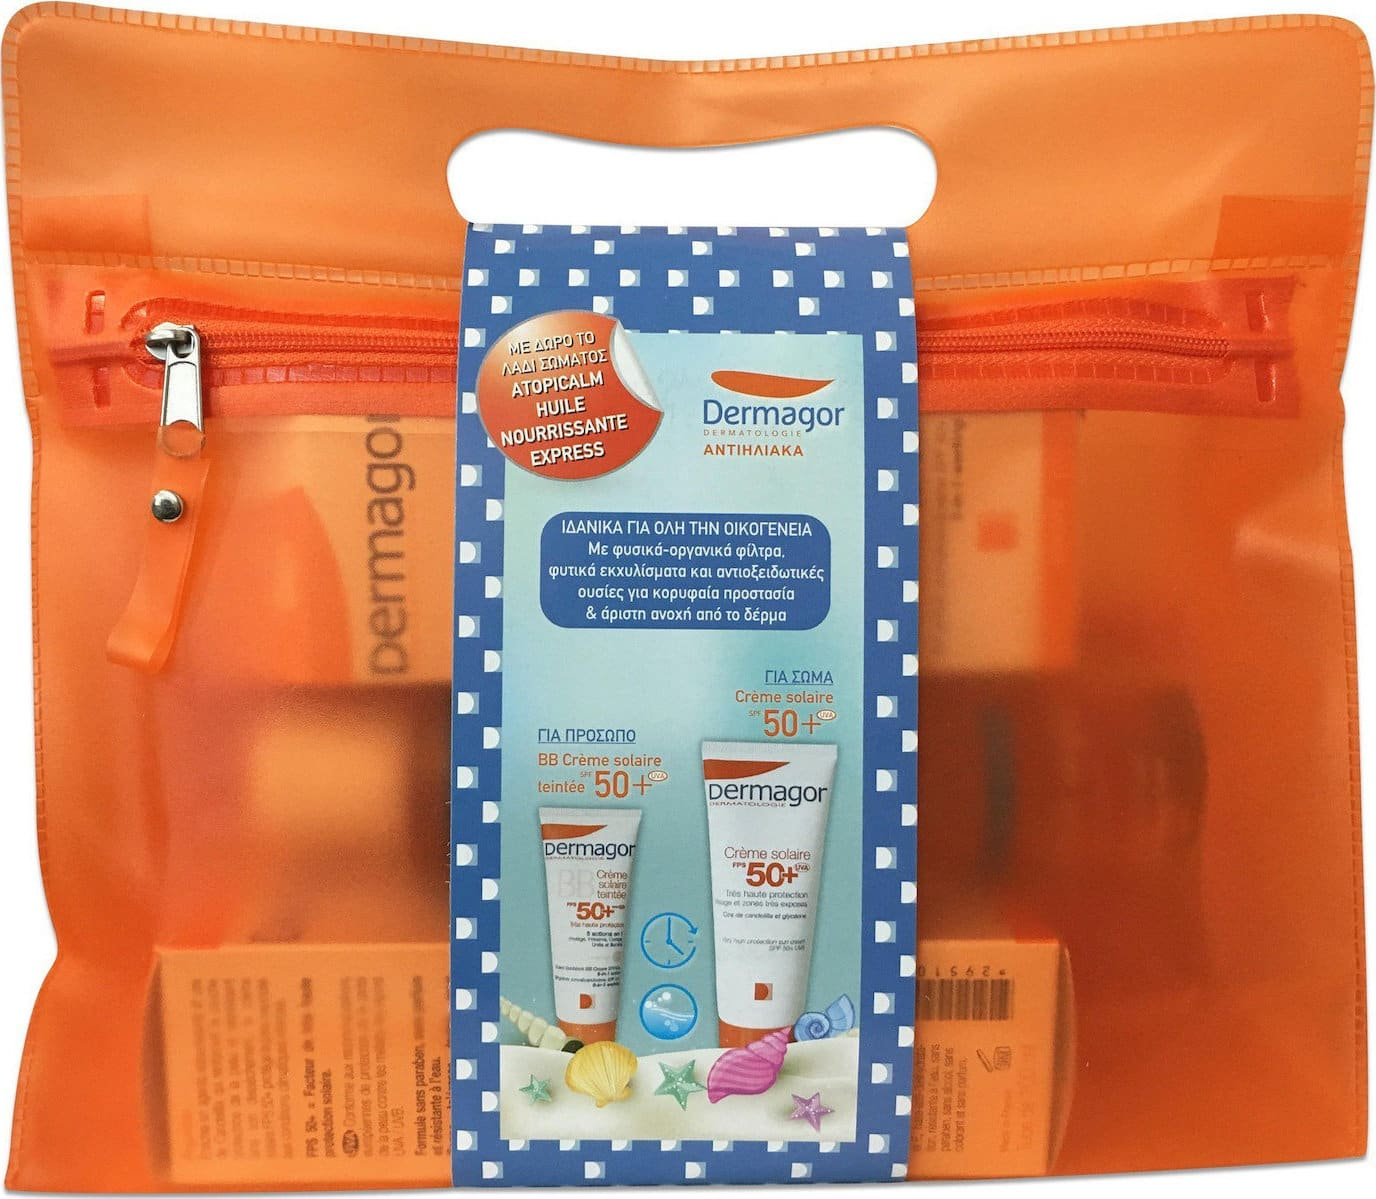 Inpa Dermagor PROMO PACK Αντιηλιακά σε Τσαντάκι με Creme Solaire SPF50+, 100ml & ΜΑΖΙ BB Creme Solaire Teintees SPF50+, 40ml & ΔΩΡΟ Atopicalm Huile Nourrissante Express, 200ml